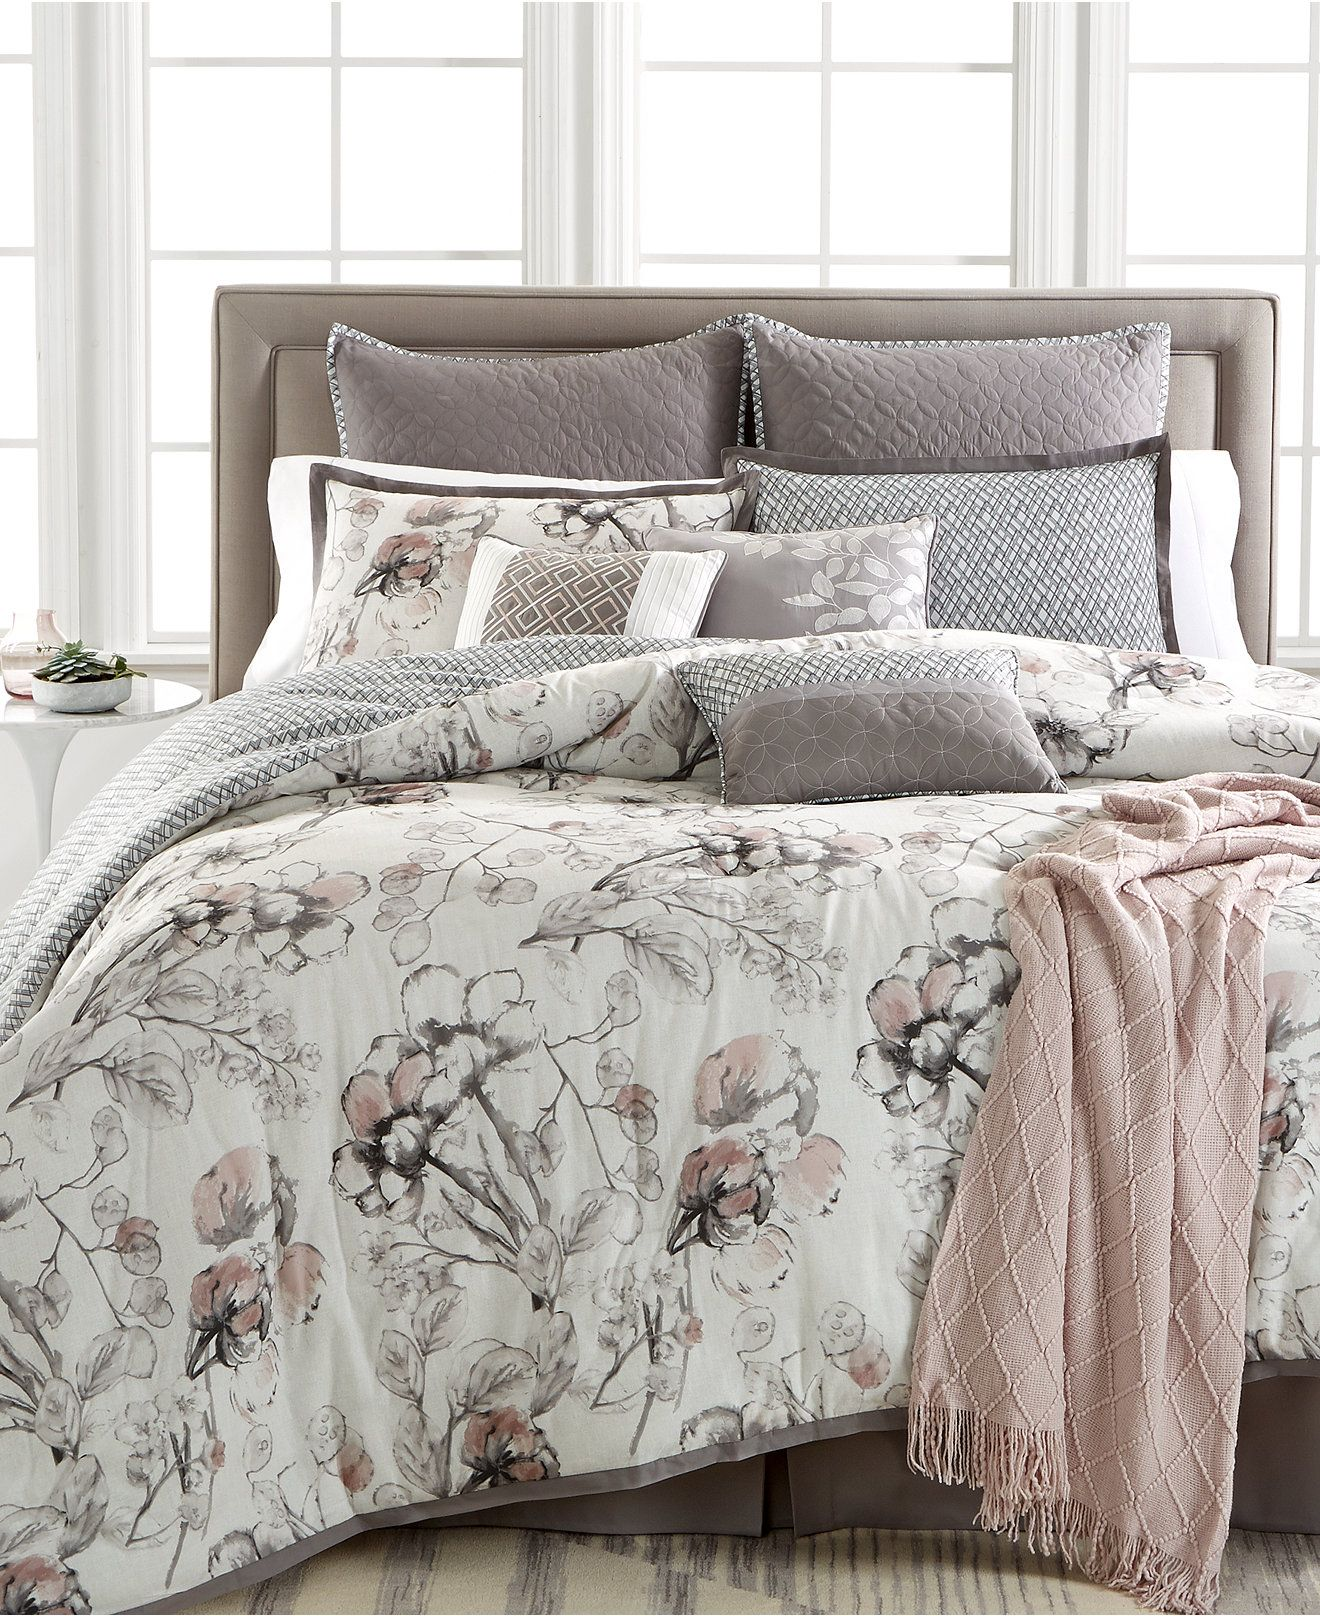 romantic down of review spring reviews comforter interior sheets collection serena ideas makeover macys size hotel girl large decorating bedroom and design bedding lily